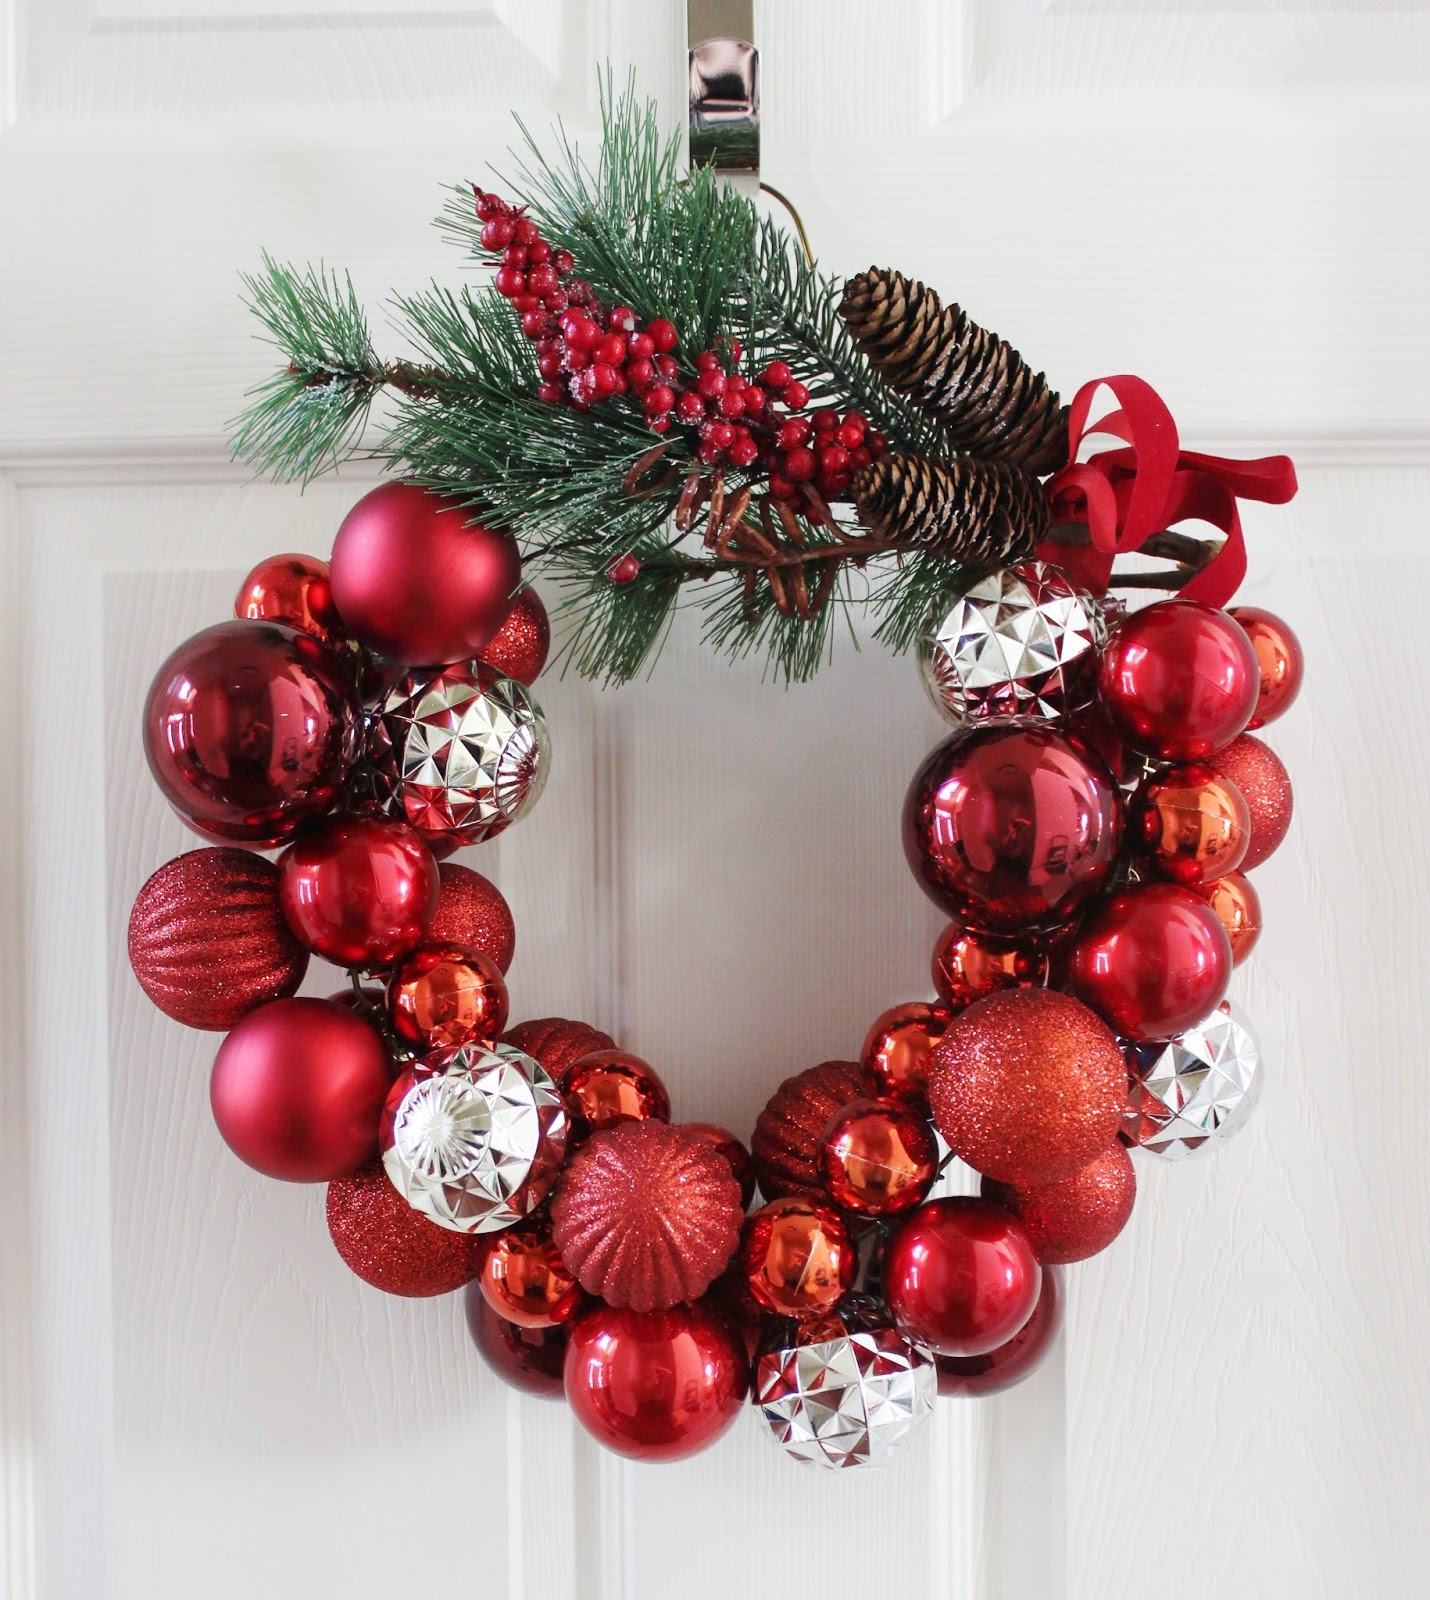 DIY Ornament Wreath for Christmas